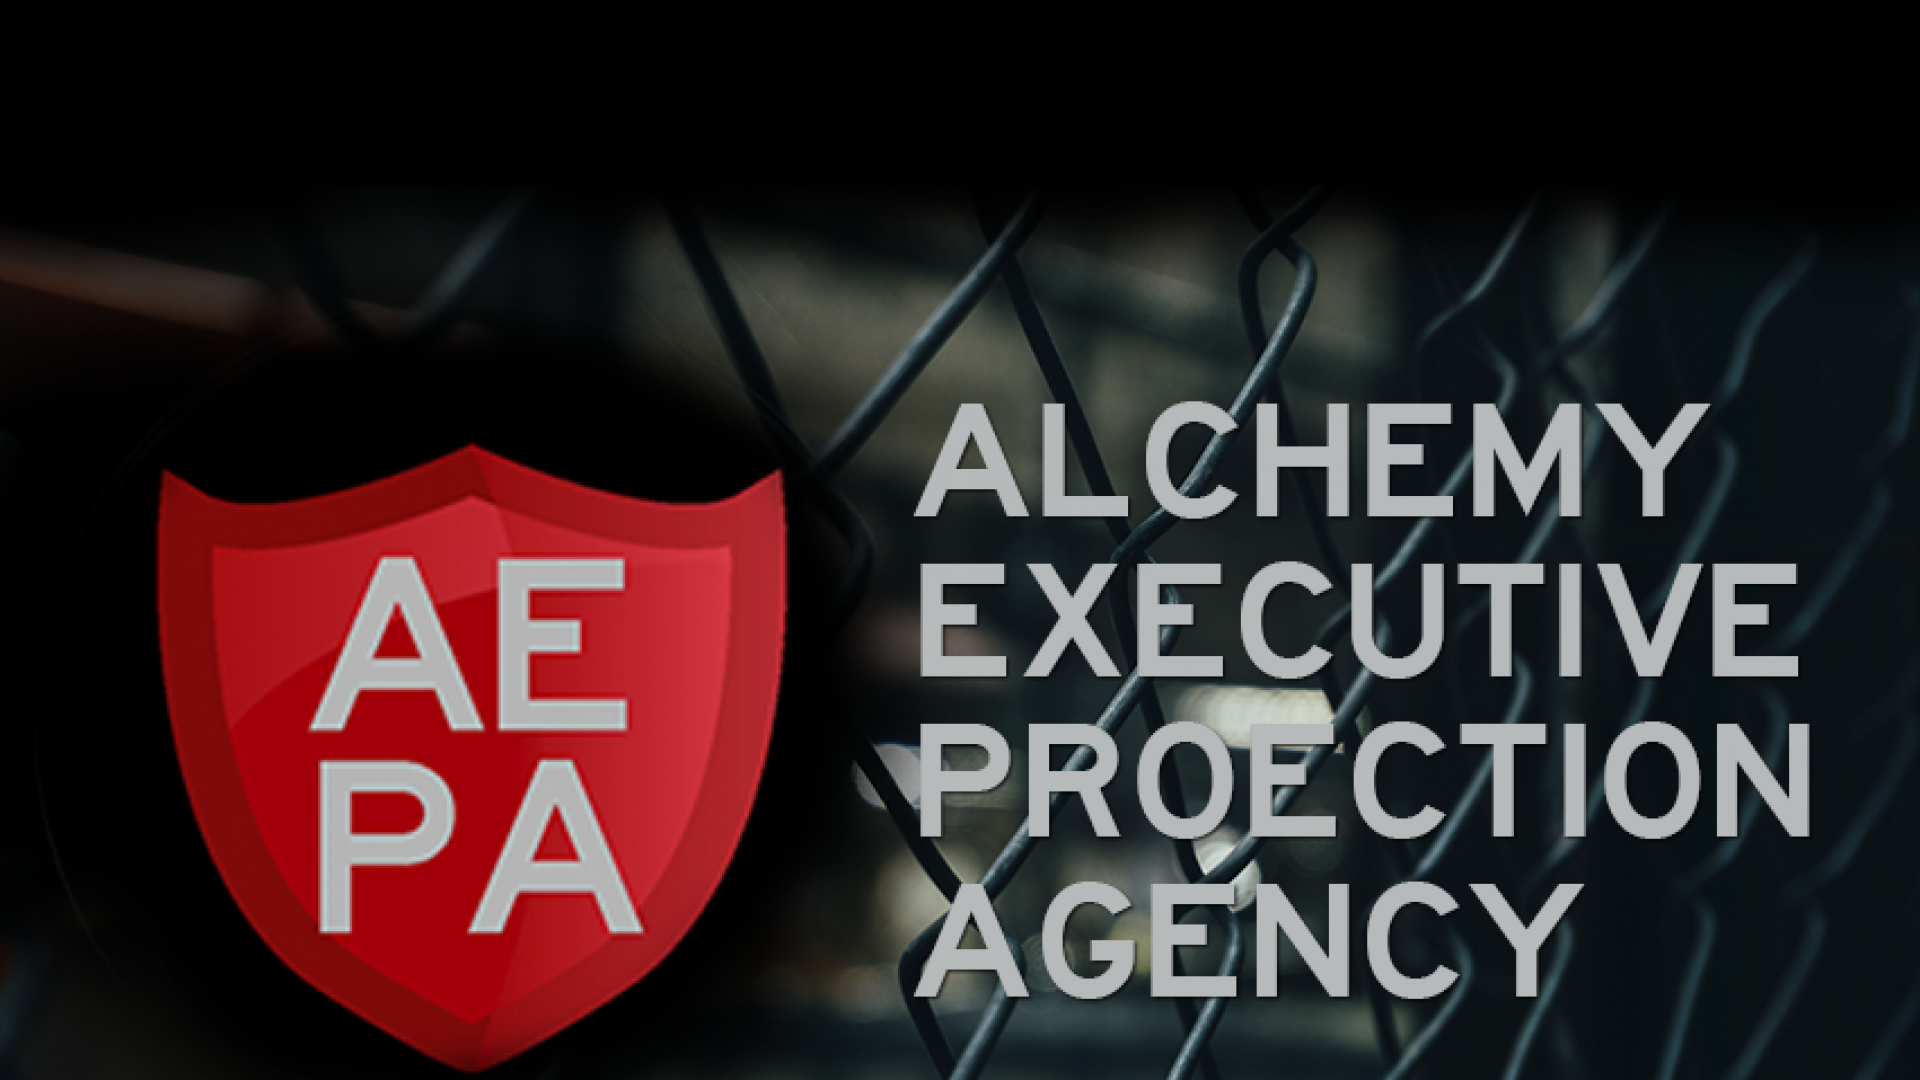 ALCHEMY EXECUTIVE PROTECTION AGENCY